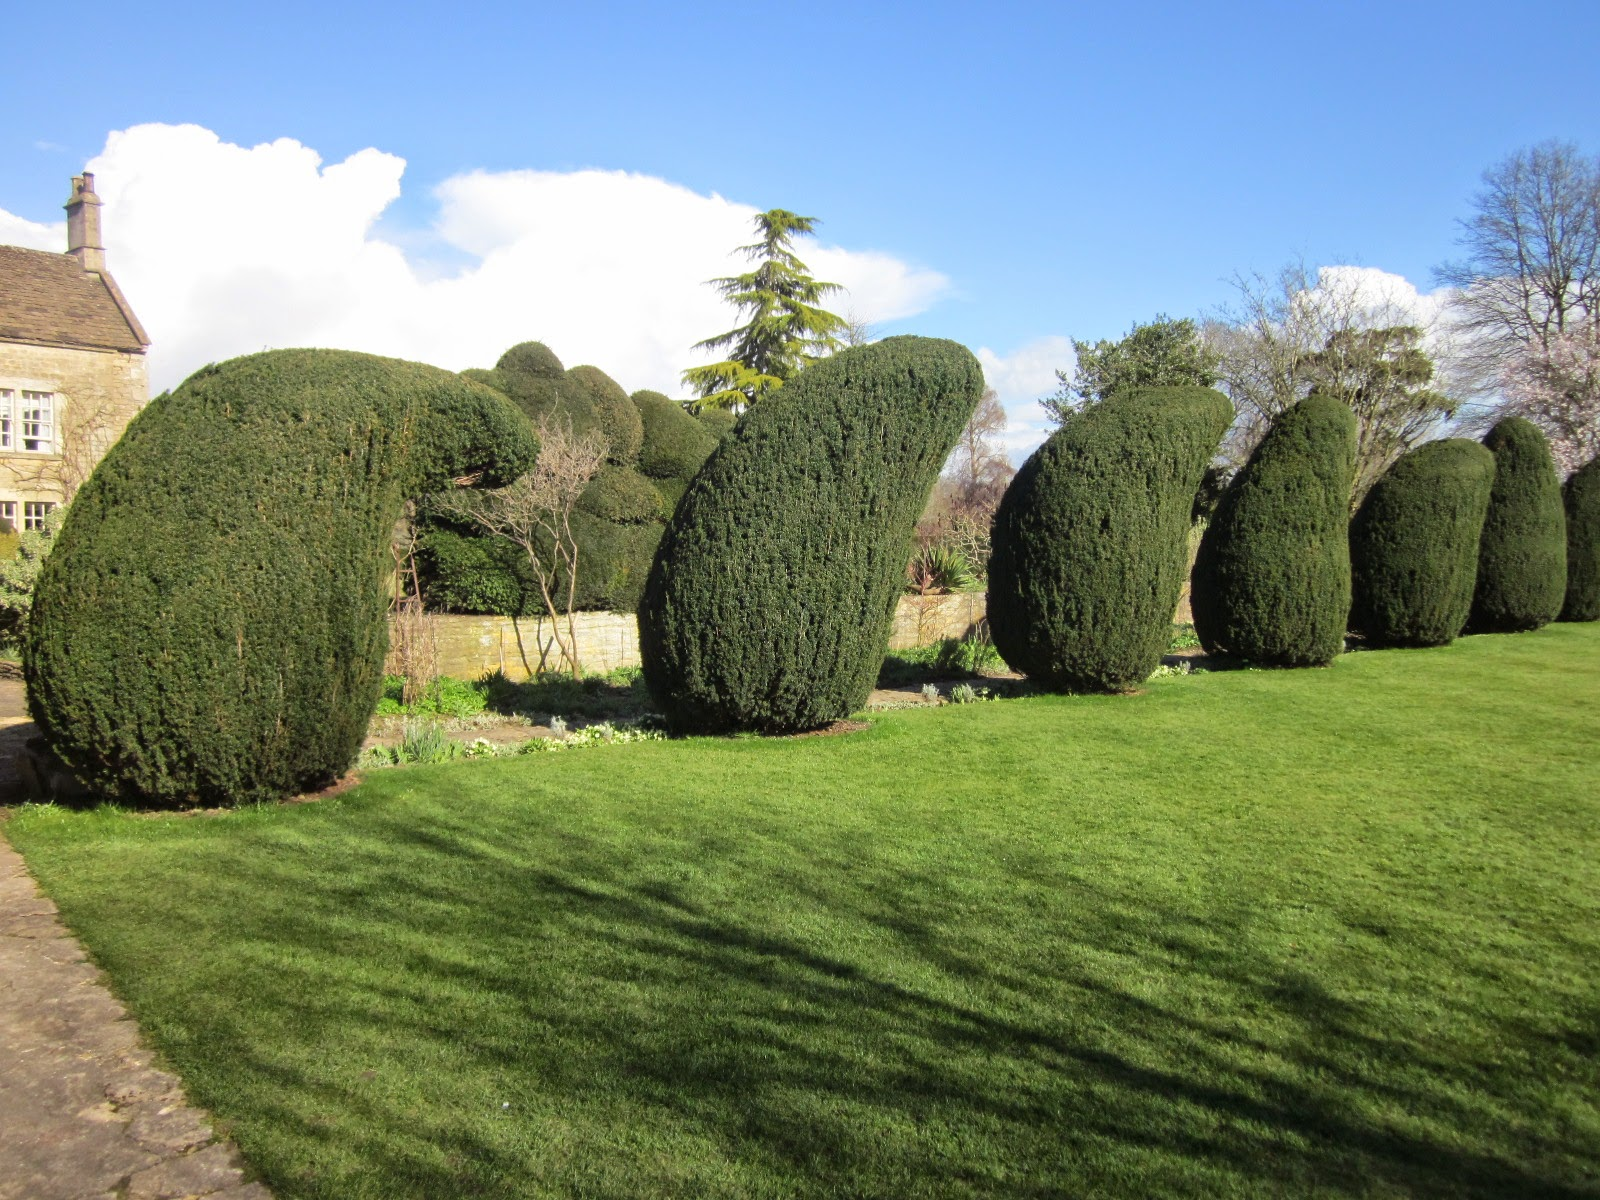 The gigglesome yews at The Courts, Holt, Wiltshire